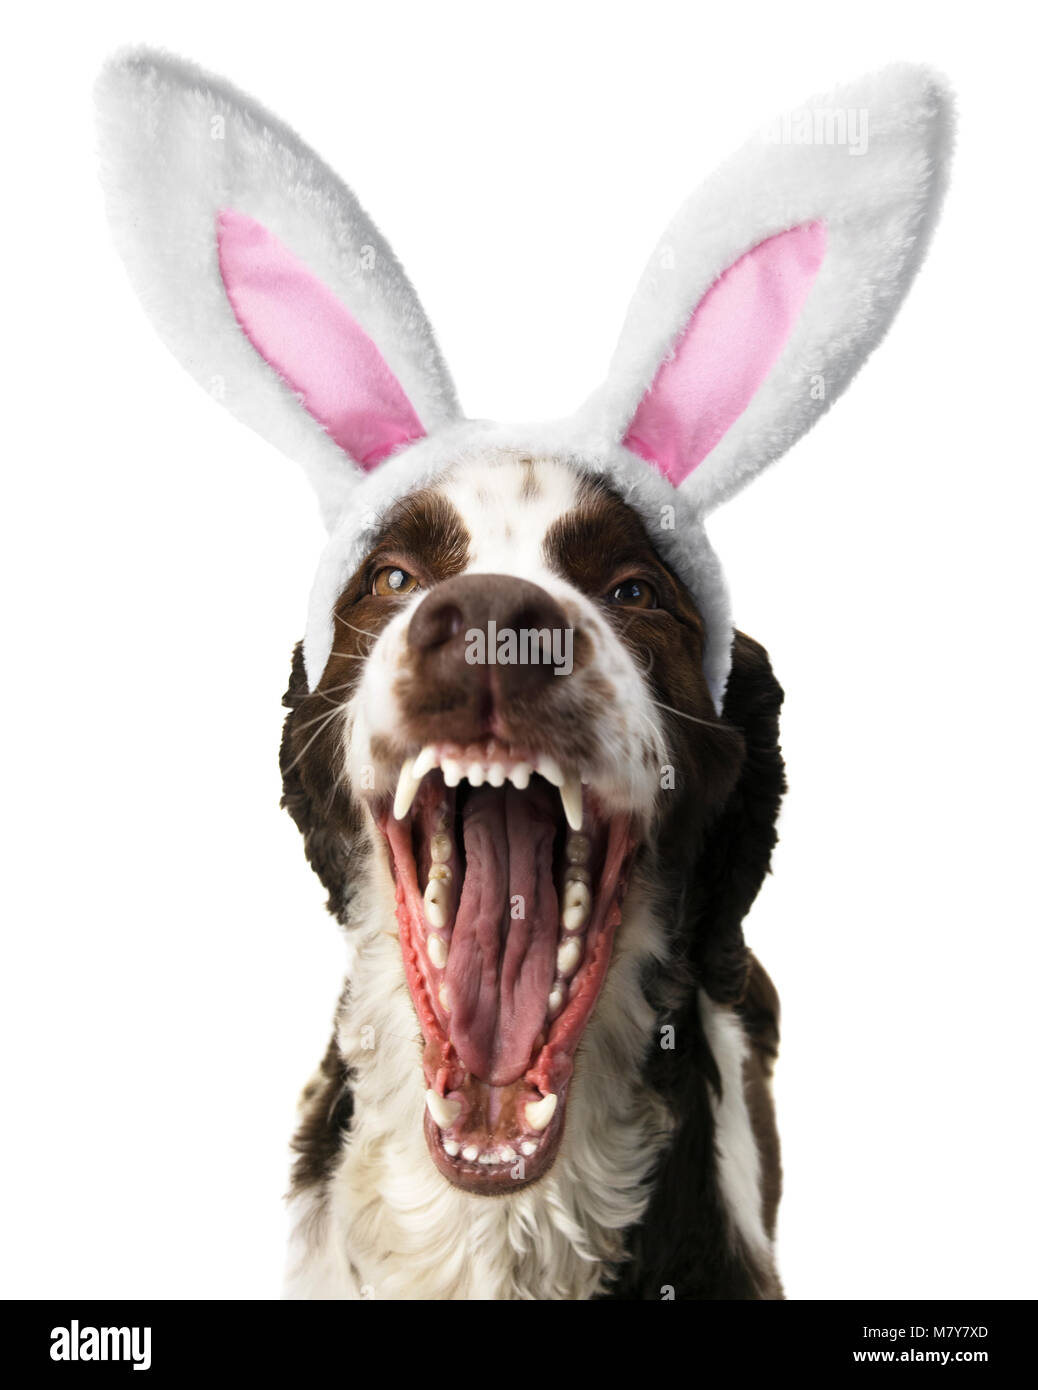 Springer Spaniel With Open Mouth and Bunny Ears. - Stock Image